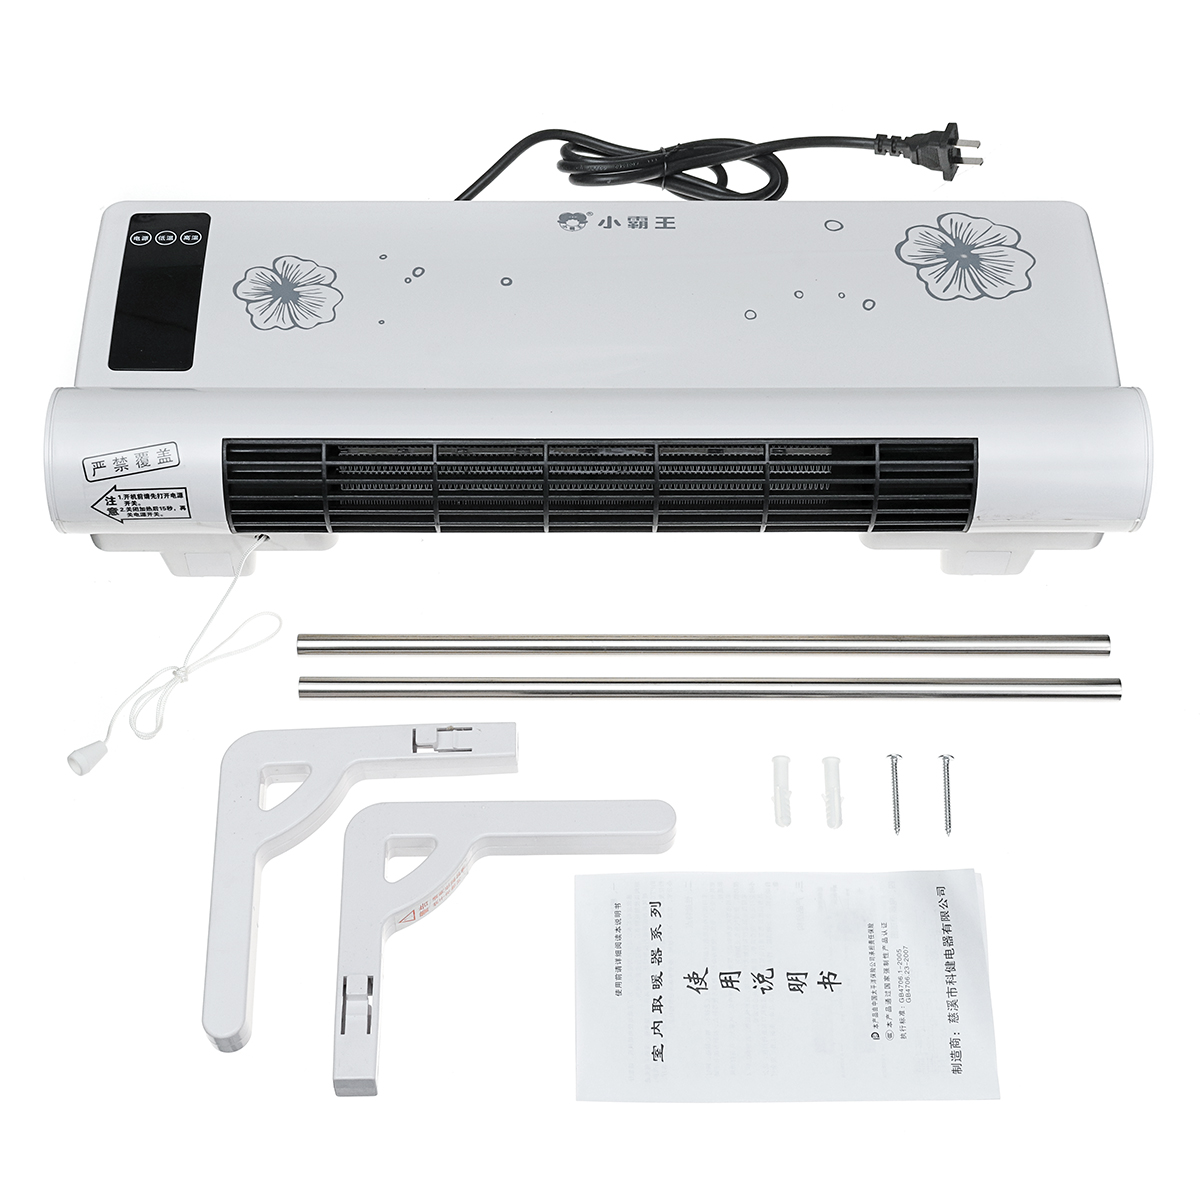 2000W Electric Wall Mounted Heater Space Fast Heating LED Air Conditioner Drying